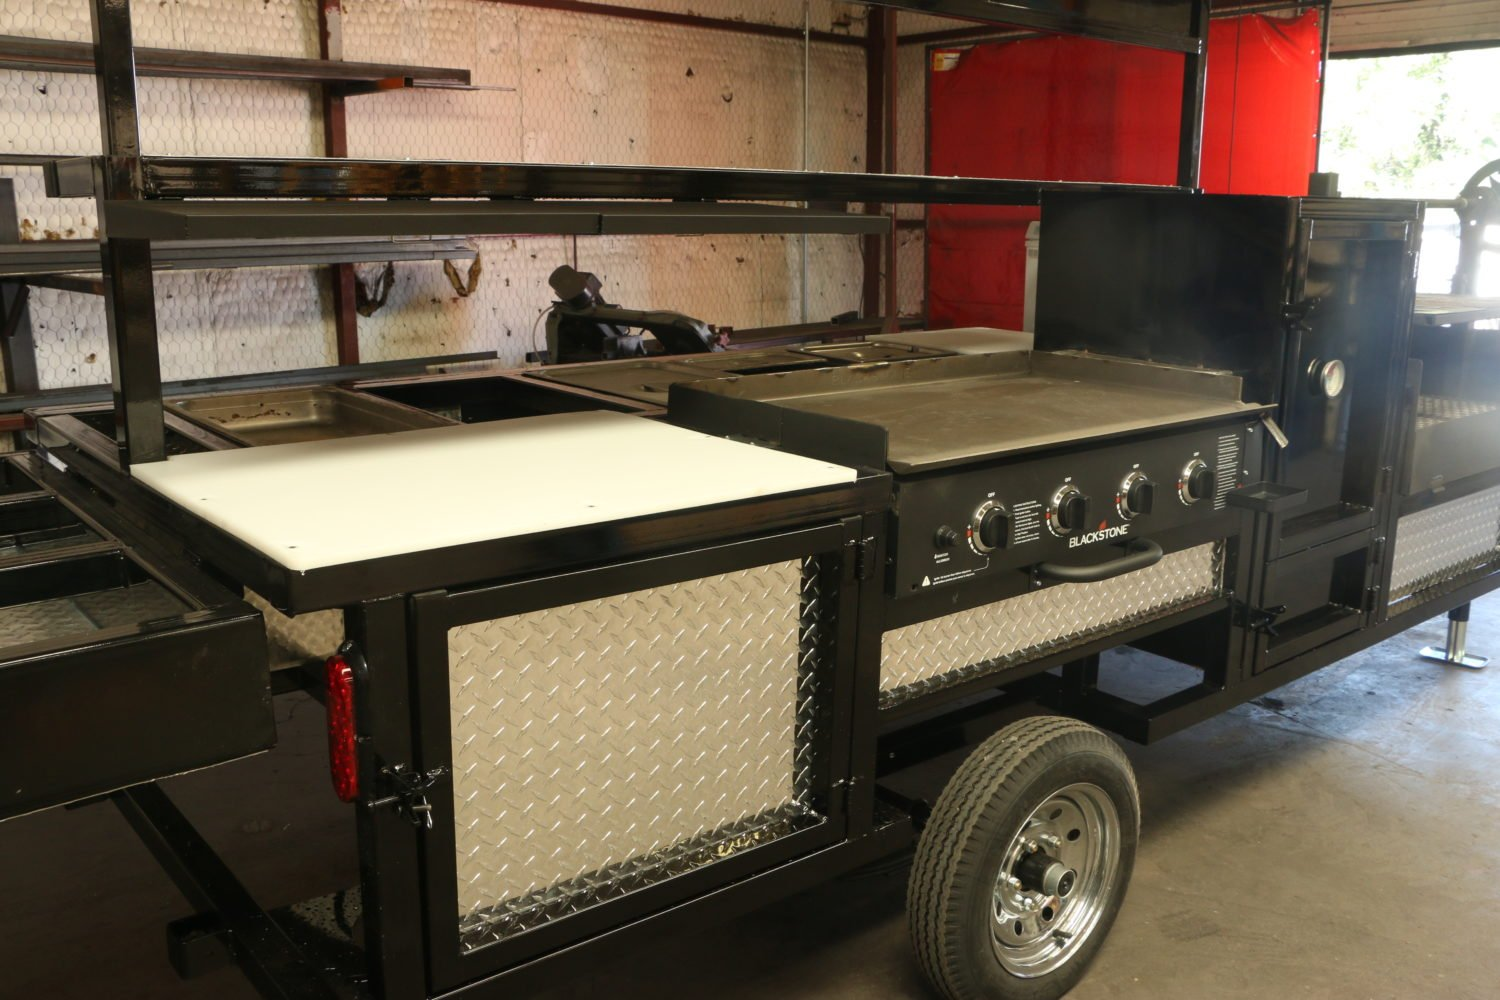 Texan Fully Loaded Concession Trailer Amp Freezer Omg Grills